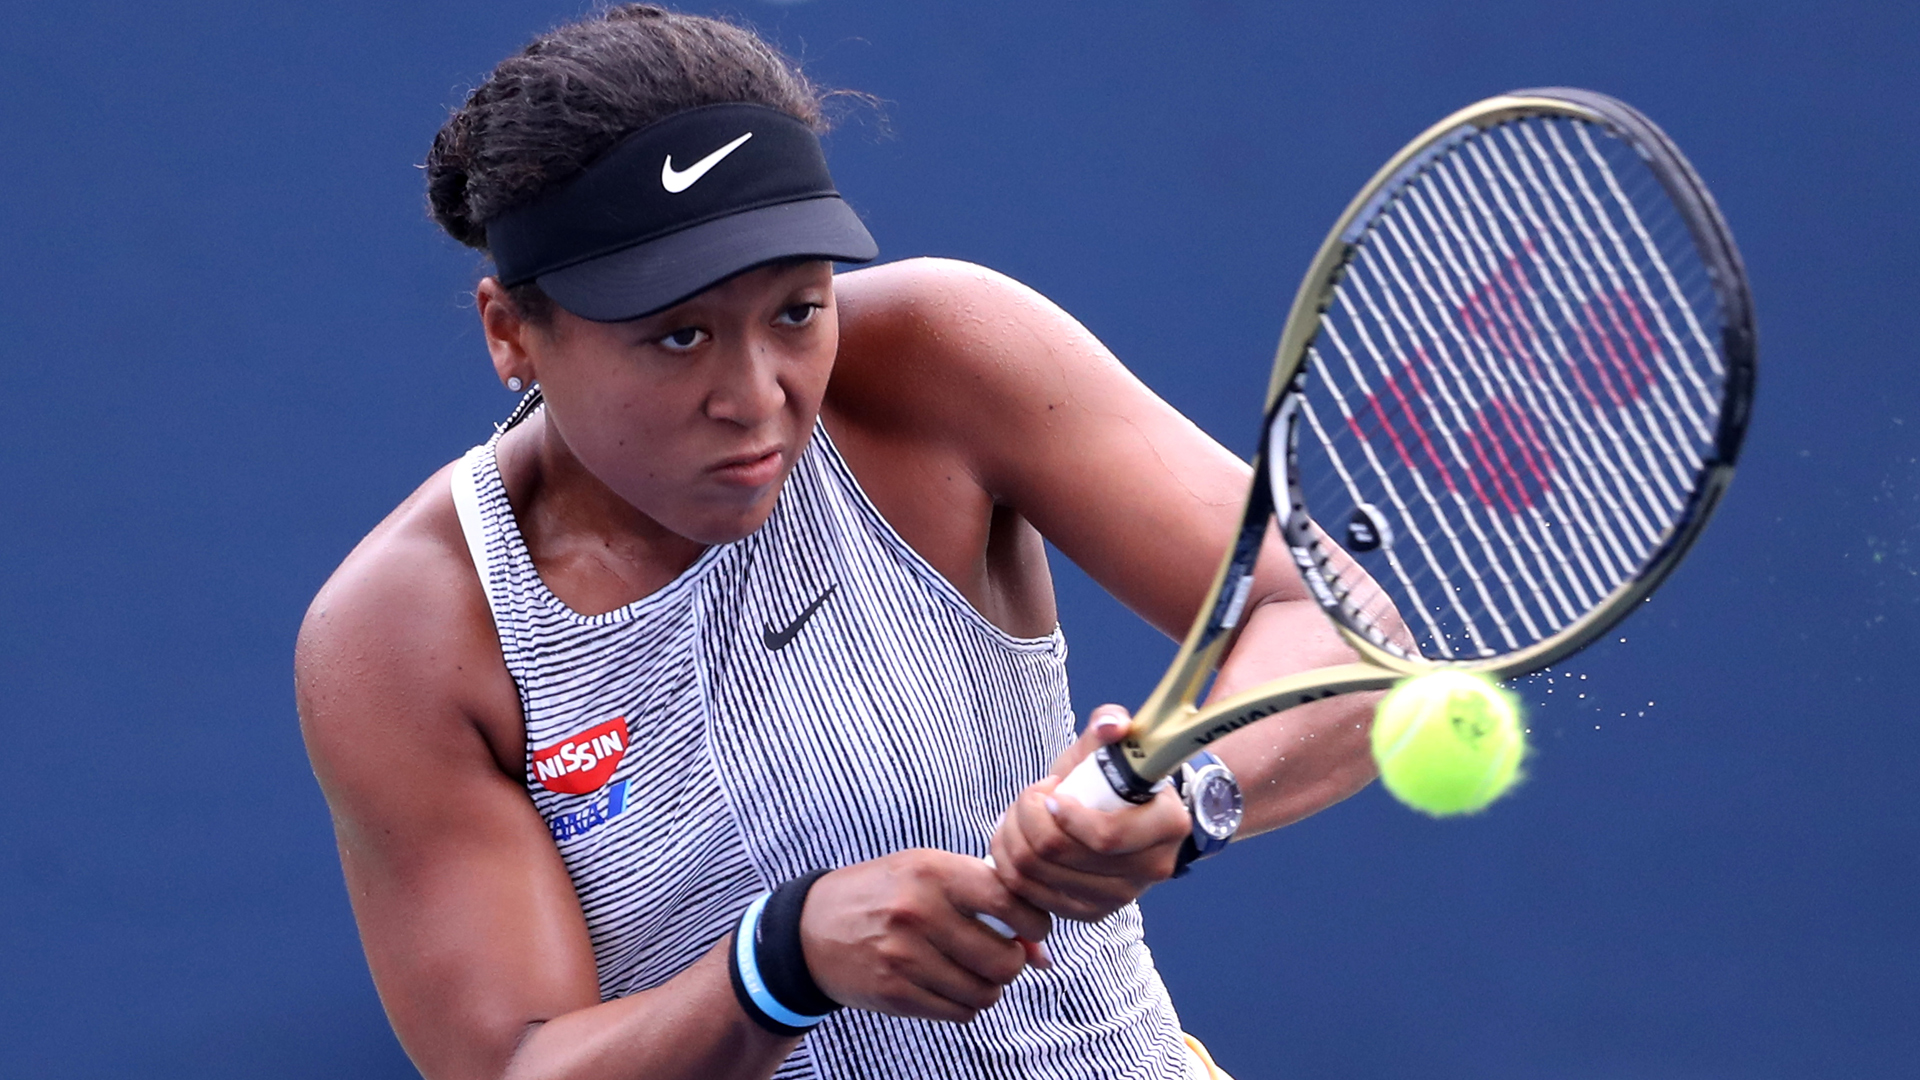 It was a good day for the seeds at the Western & Southern Open as Naomi Osaka, Simona Halep and Ashleigh Barty advanced.